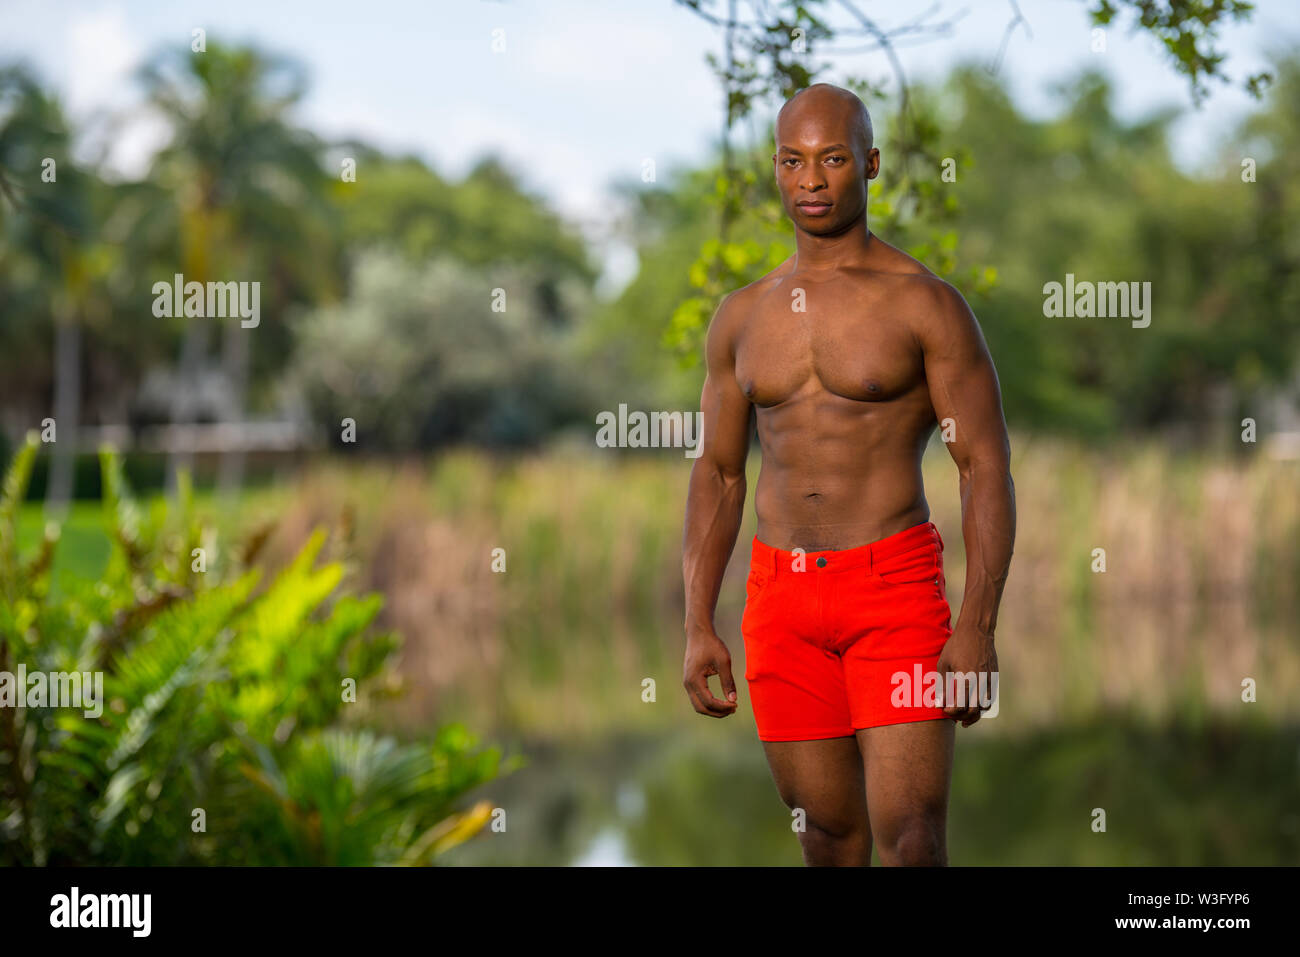 Attractive young fitness model posing shirtless in the park. Image lit with off camera flash - Stock Image